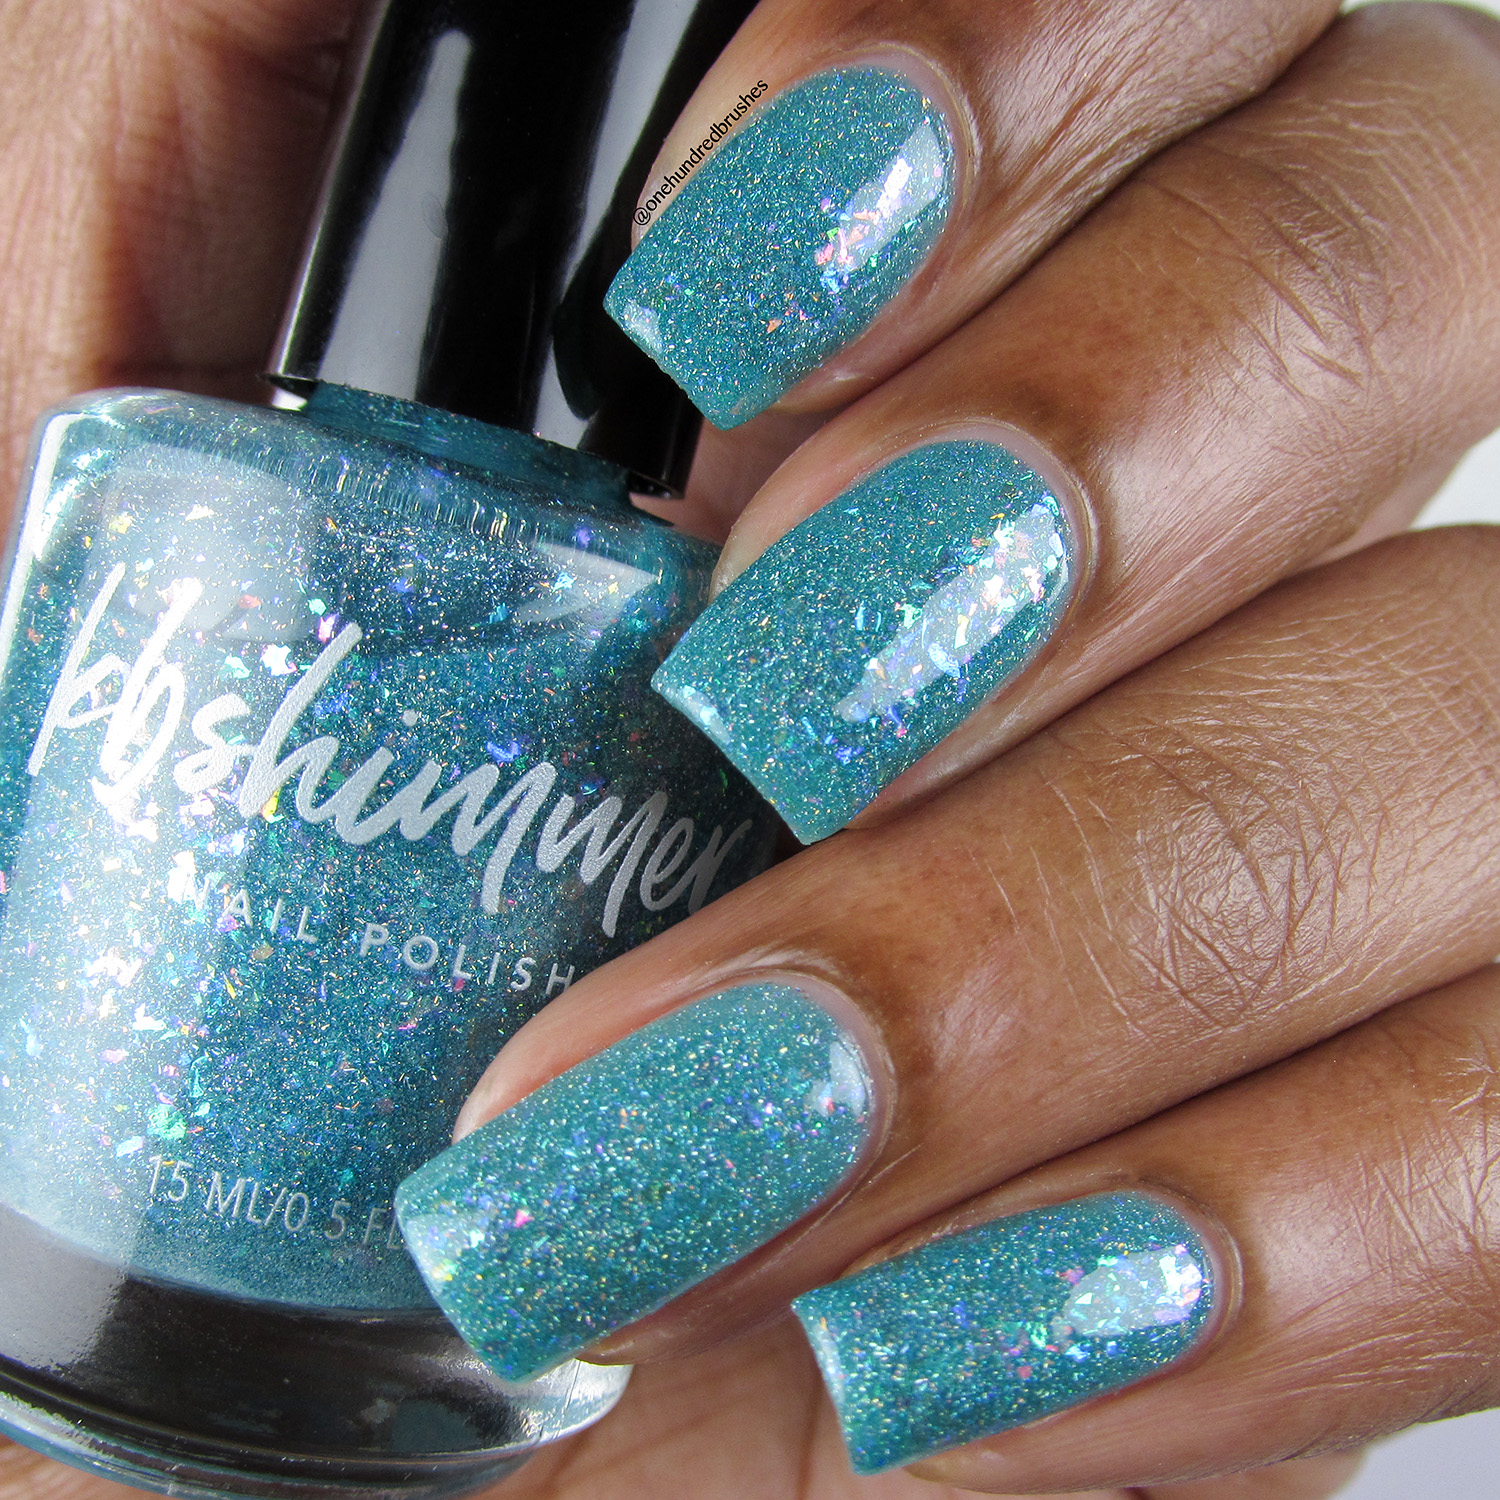 Hubble'd Together - Bottle Side - KBShimmer - Polish Pickup April 2018 - glow in the dark - jelly polish - unicorn flakes